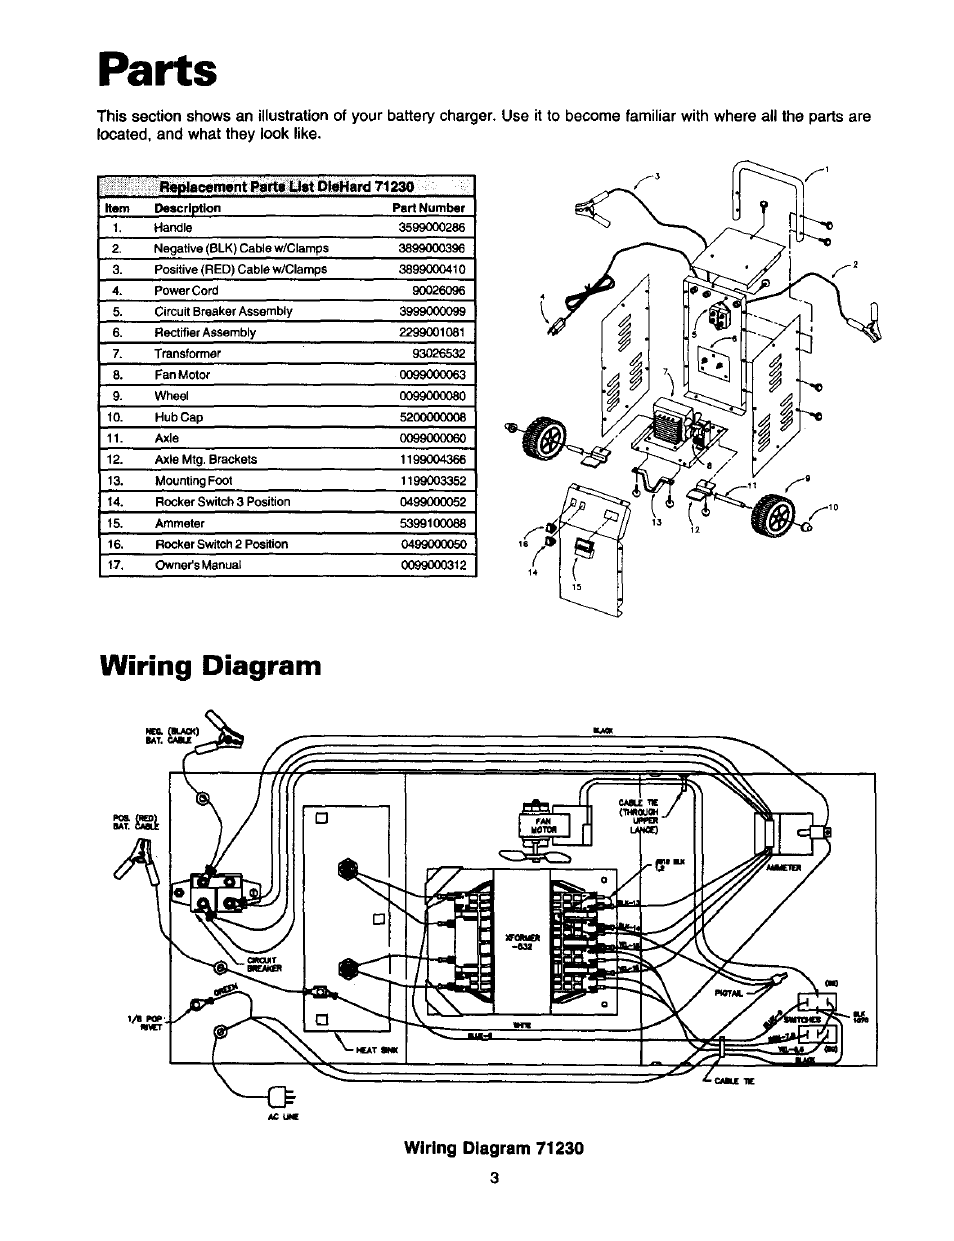 Wiring Diagram Sears 417 27182703 - basic electrical wiring ... on 3 position rocker switch heater, 3 position pull switch wiring diagram, double toggle switch wire diagram, 3 position toggle switch diagram, 3-way ignition switch diagram, 3 position rocker switch for bilge pump, 3 position toggle switch wiring, 3 position lever switch wiring diagram, 3 position micro switch wiring diagram, 3 position rotary switch wiring diagram, 3 position ignition switch wiring diagram, 3 position selector switch wiring diagram,